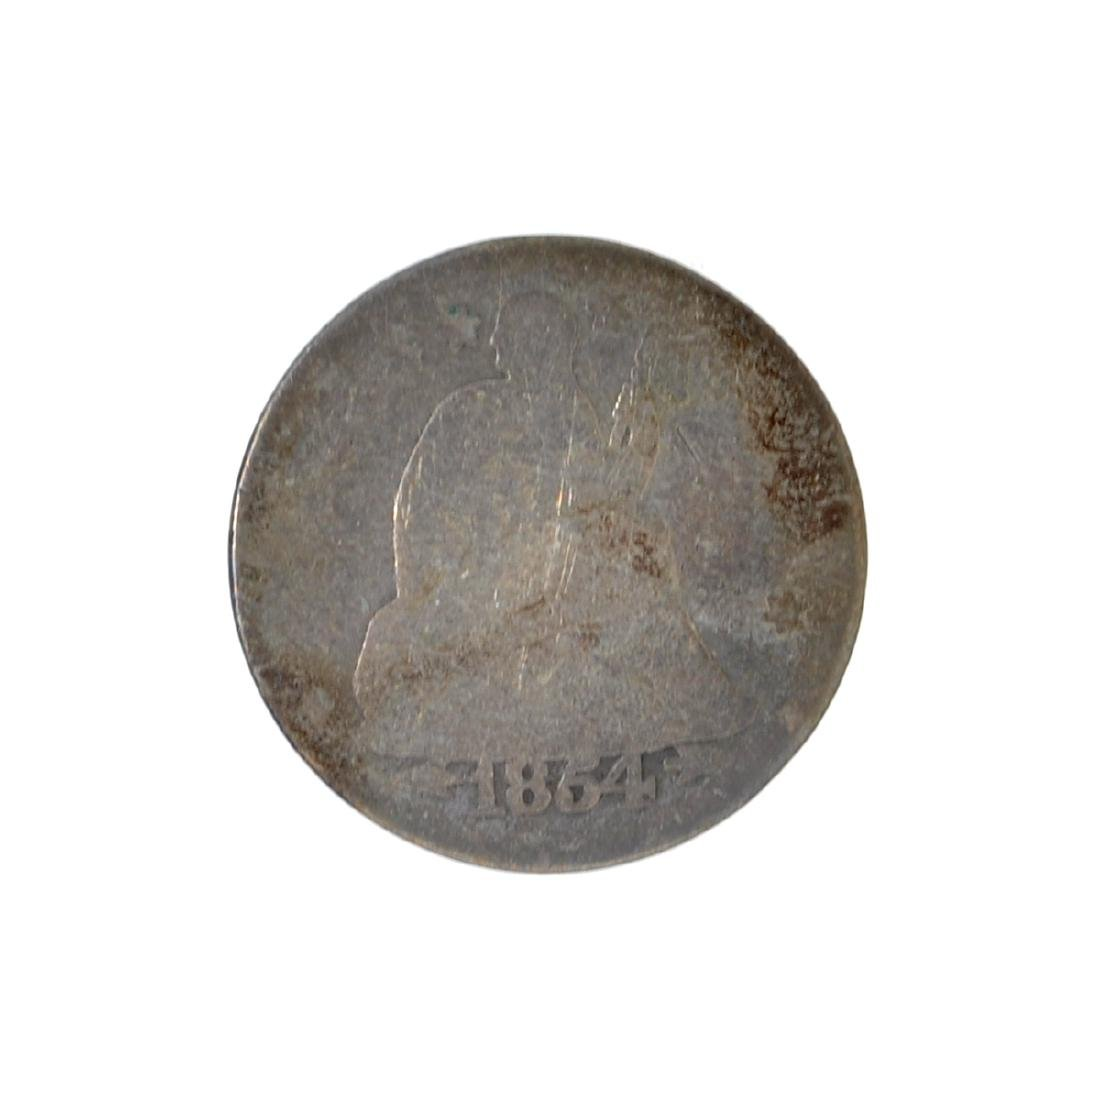 1854 Liberty Seated Arrows At Date Dime Coin